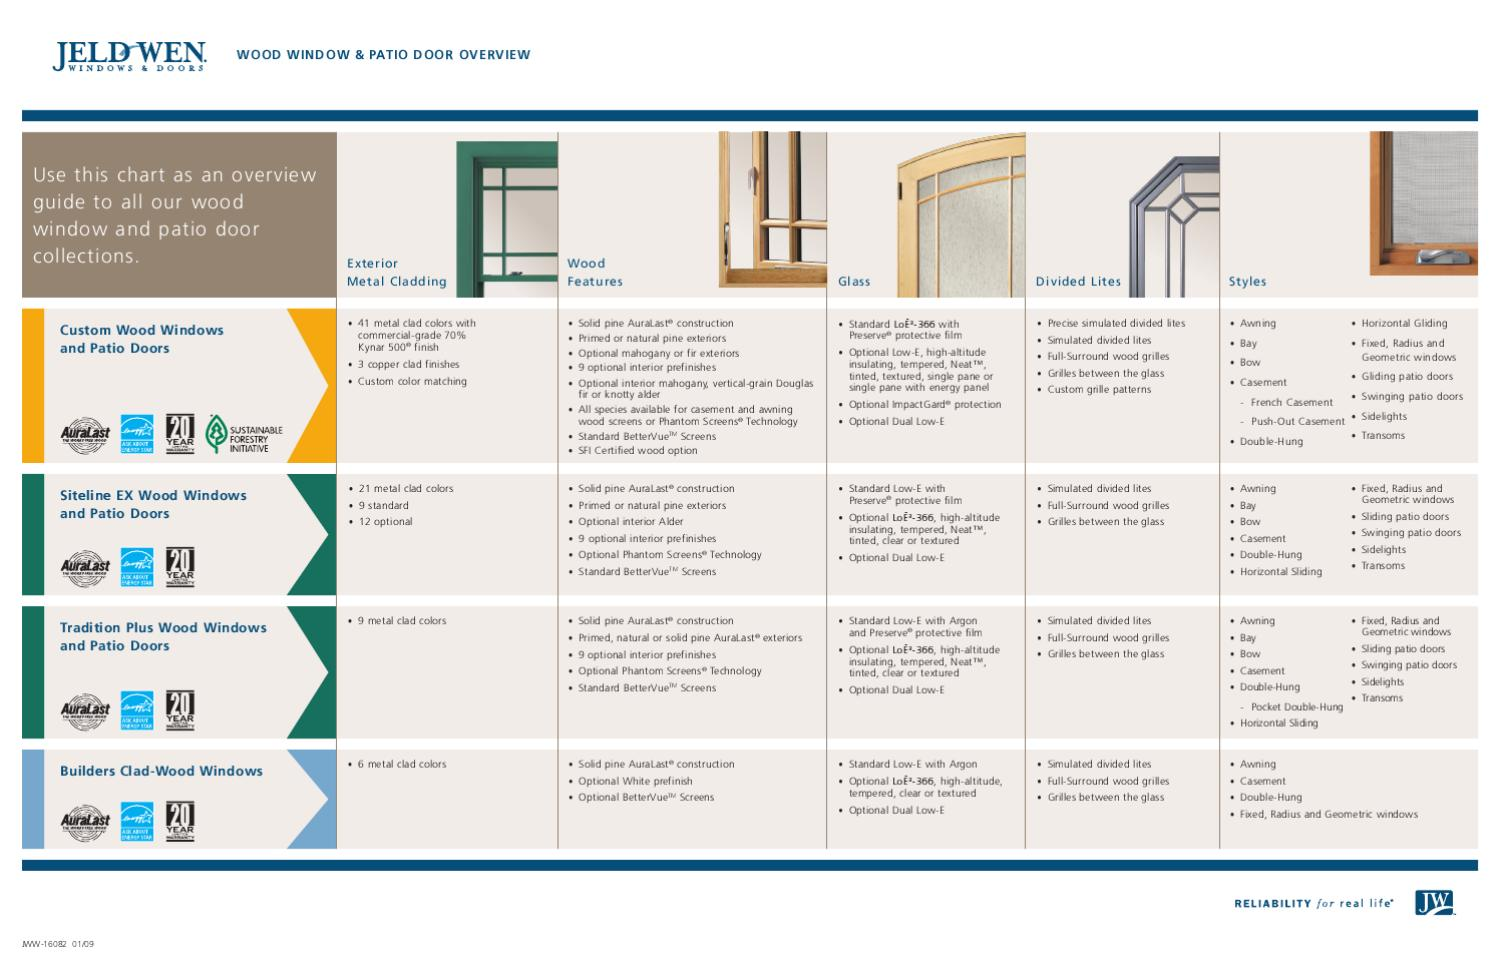 Window comparison chart from jeld wen by natural element homes llc window comparison chart from jeld wen by natural element homes llc issuu geenschuldenfo Images